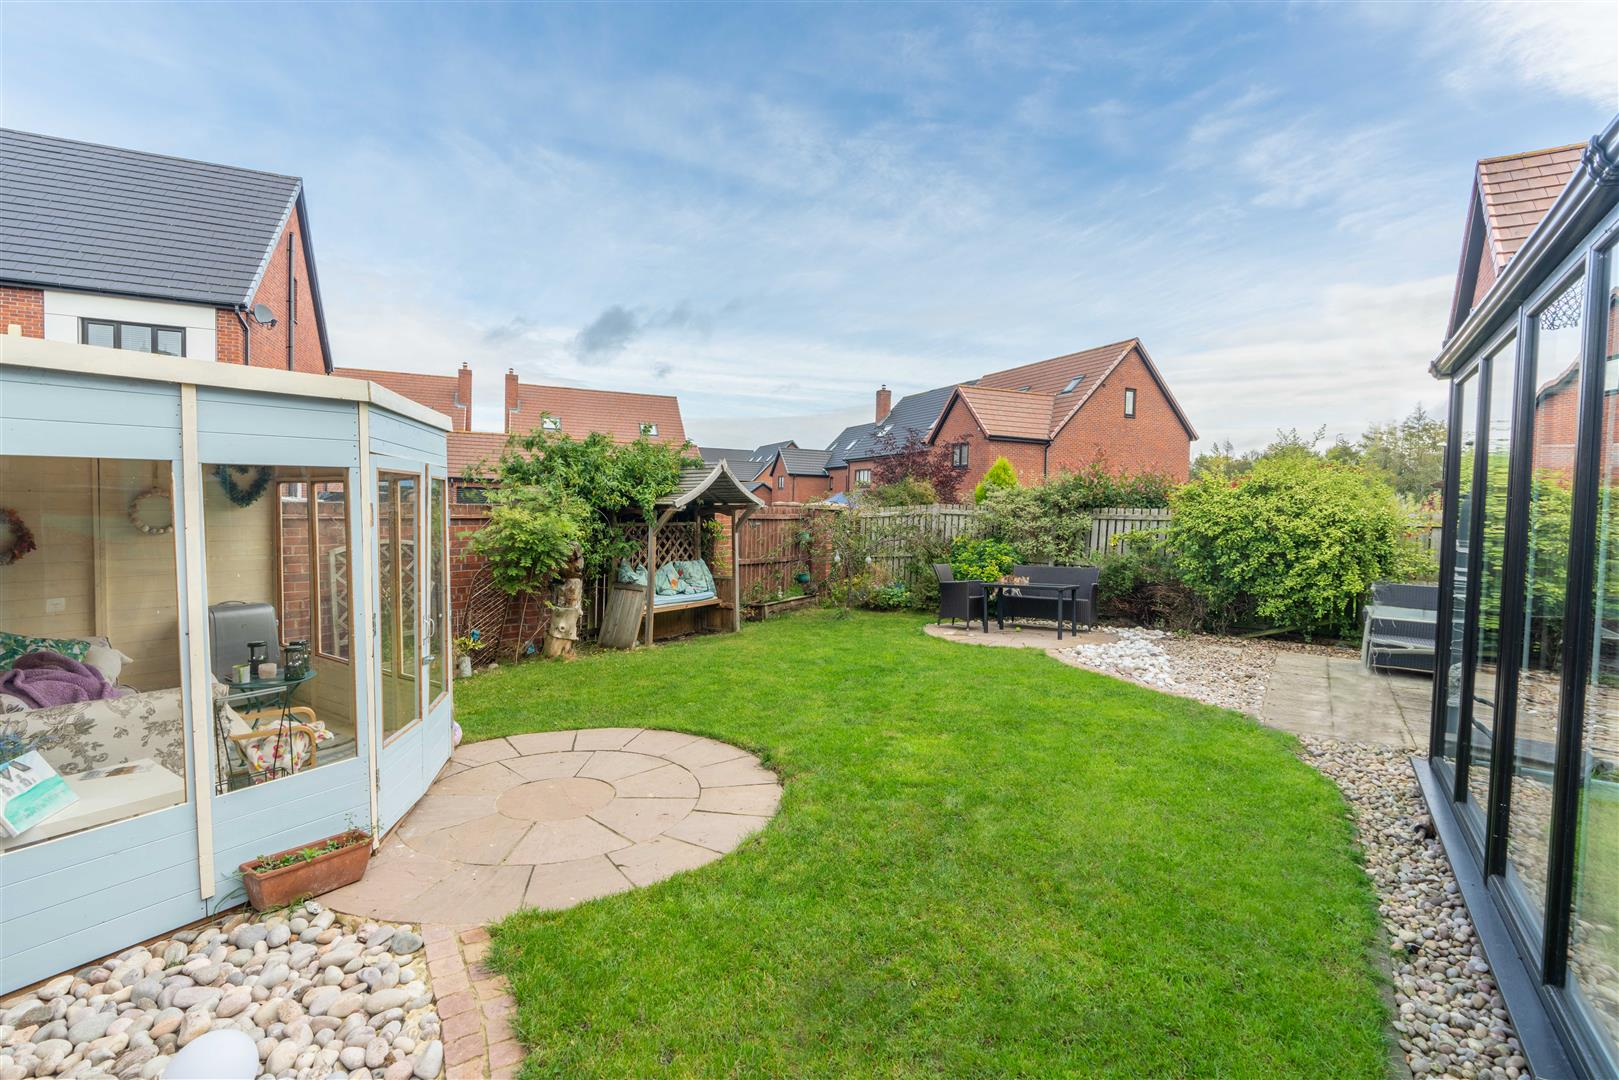 6 bed detached house for sale in Abberwick Walk, Newcastle Upon Tyne  - Property Image 7